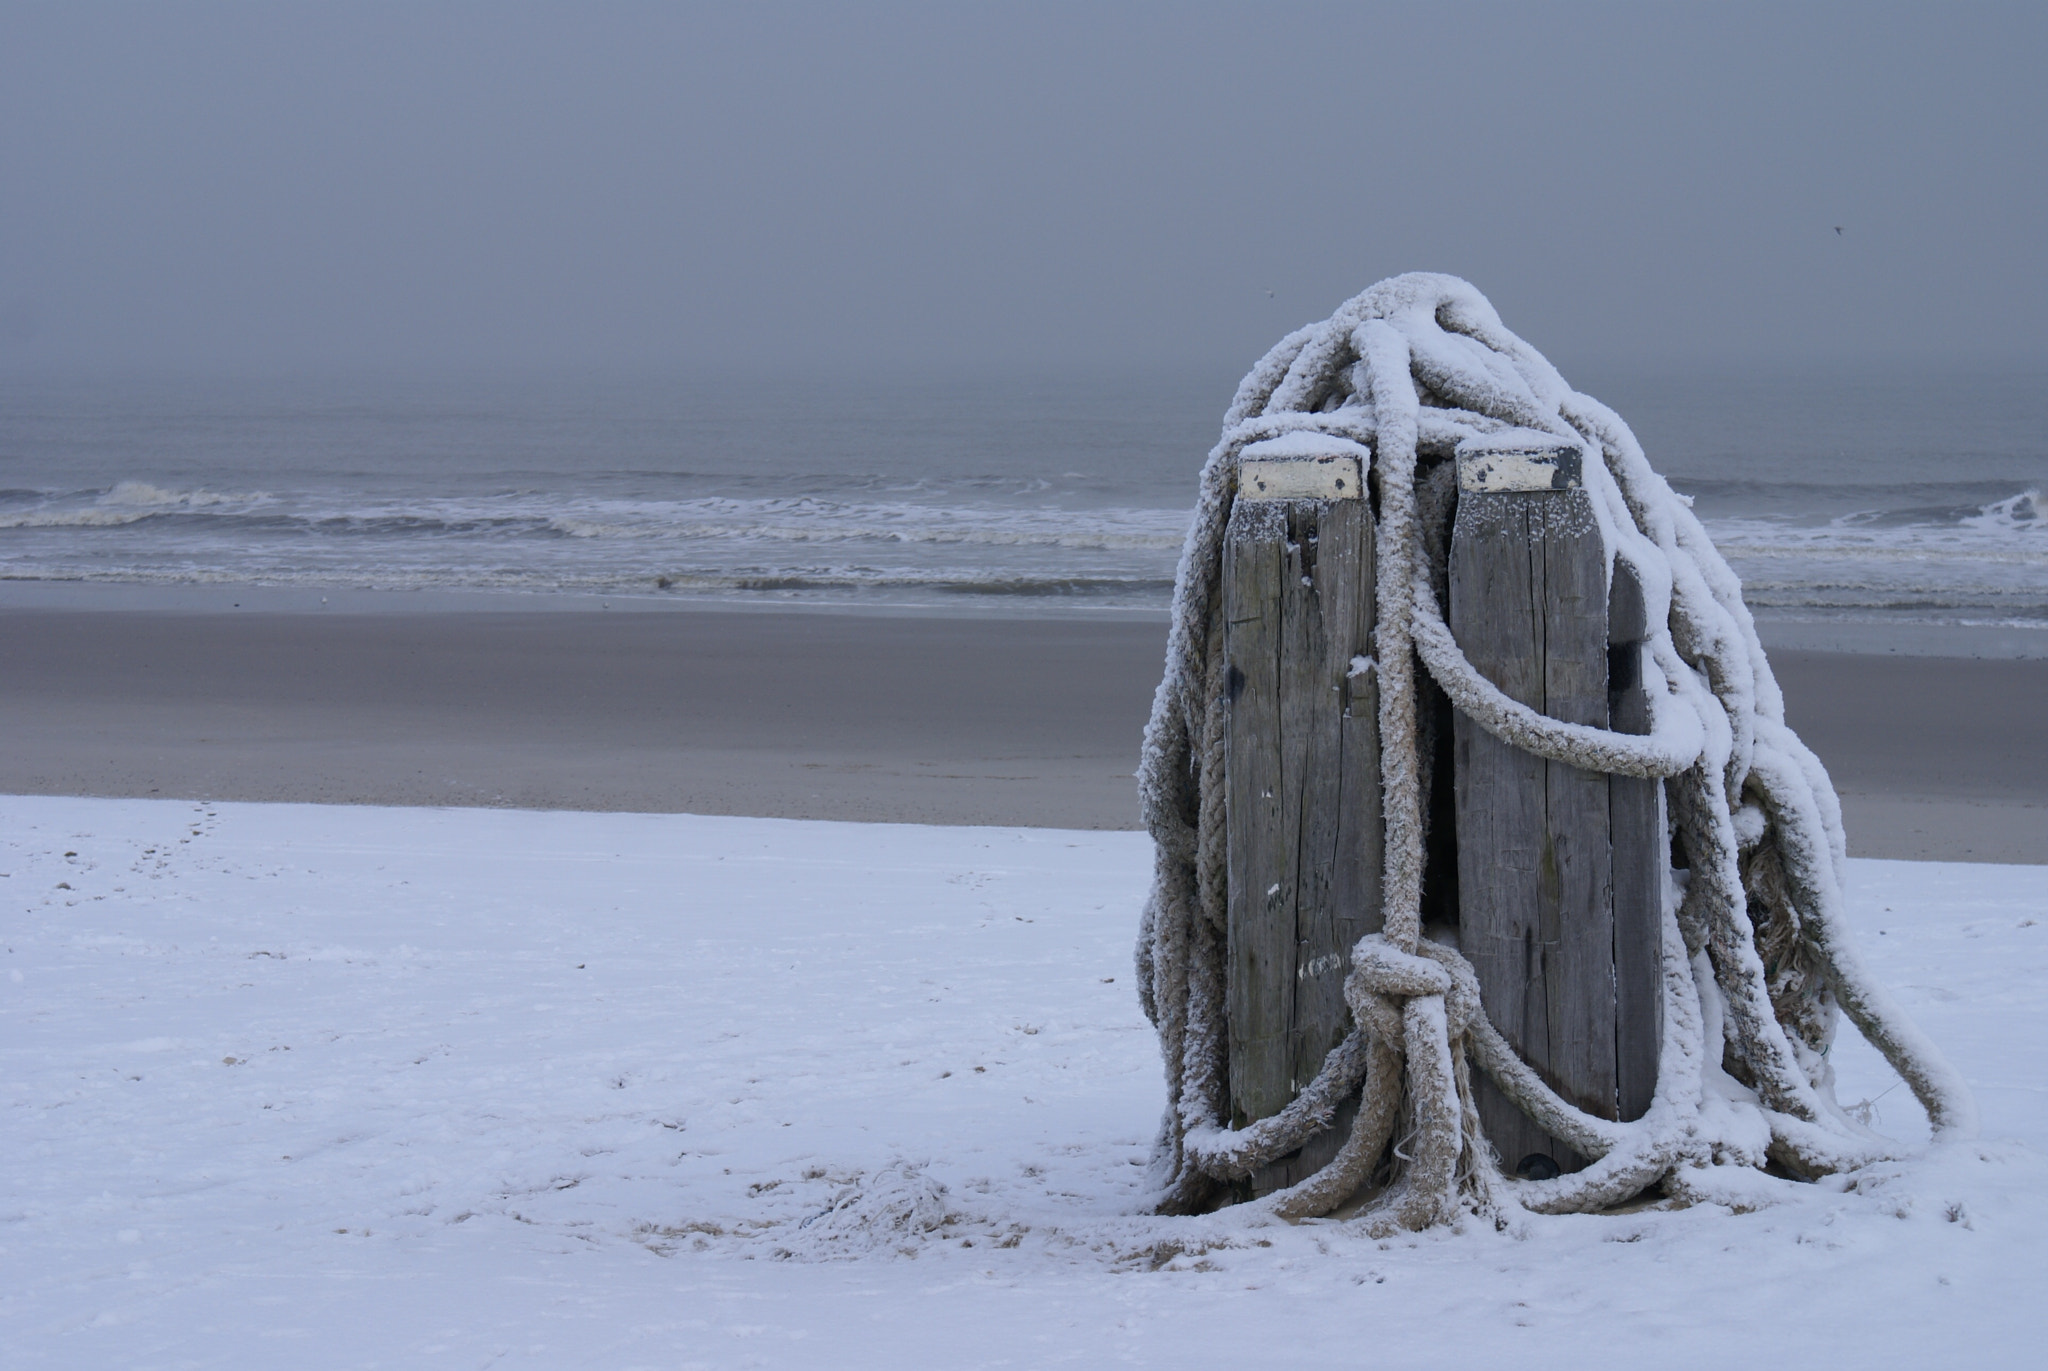 Photograph Snow on the beach by Victoria Rodriguez on 500px